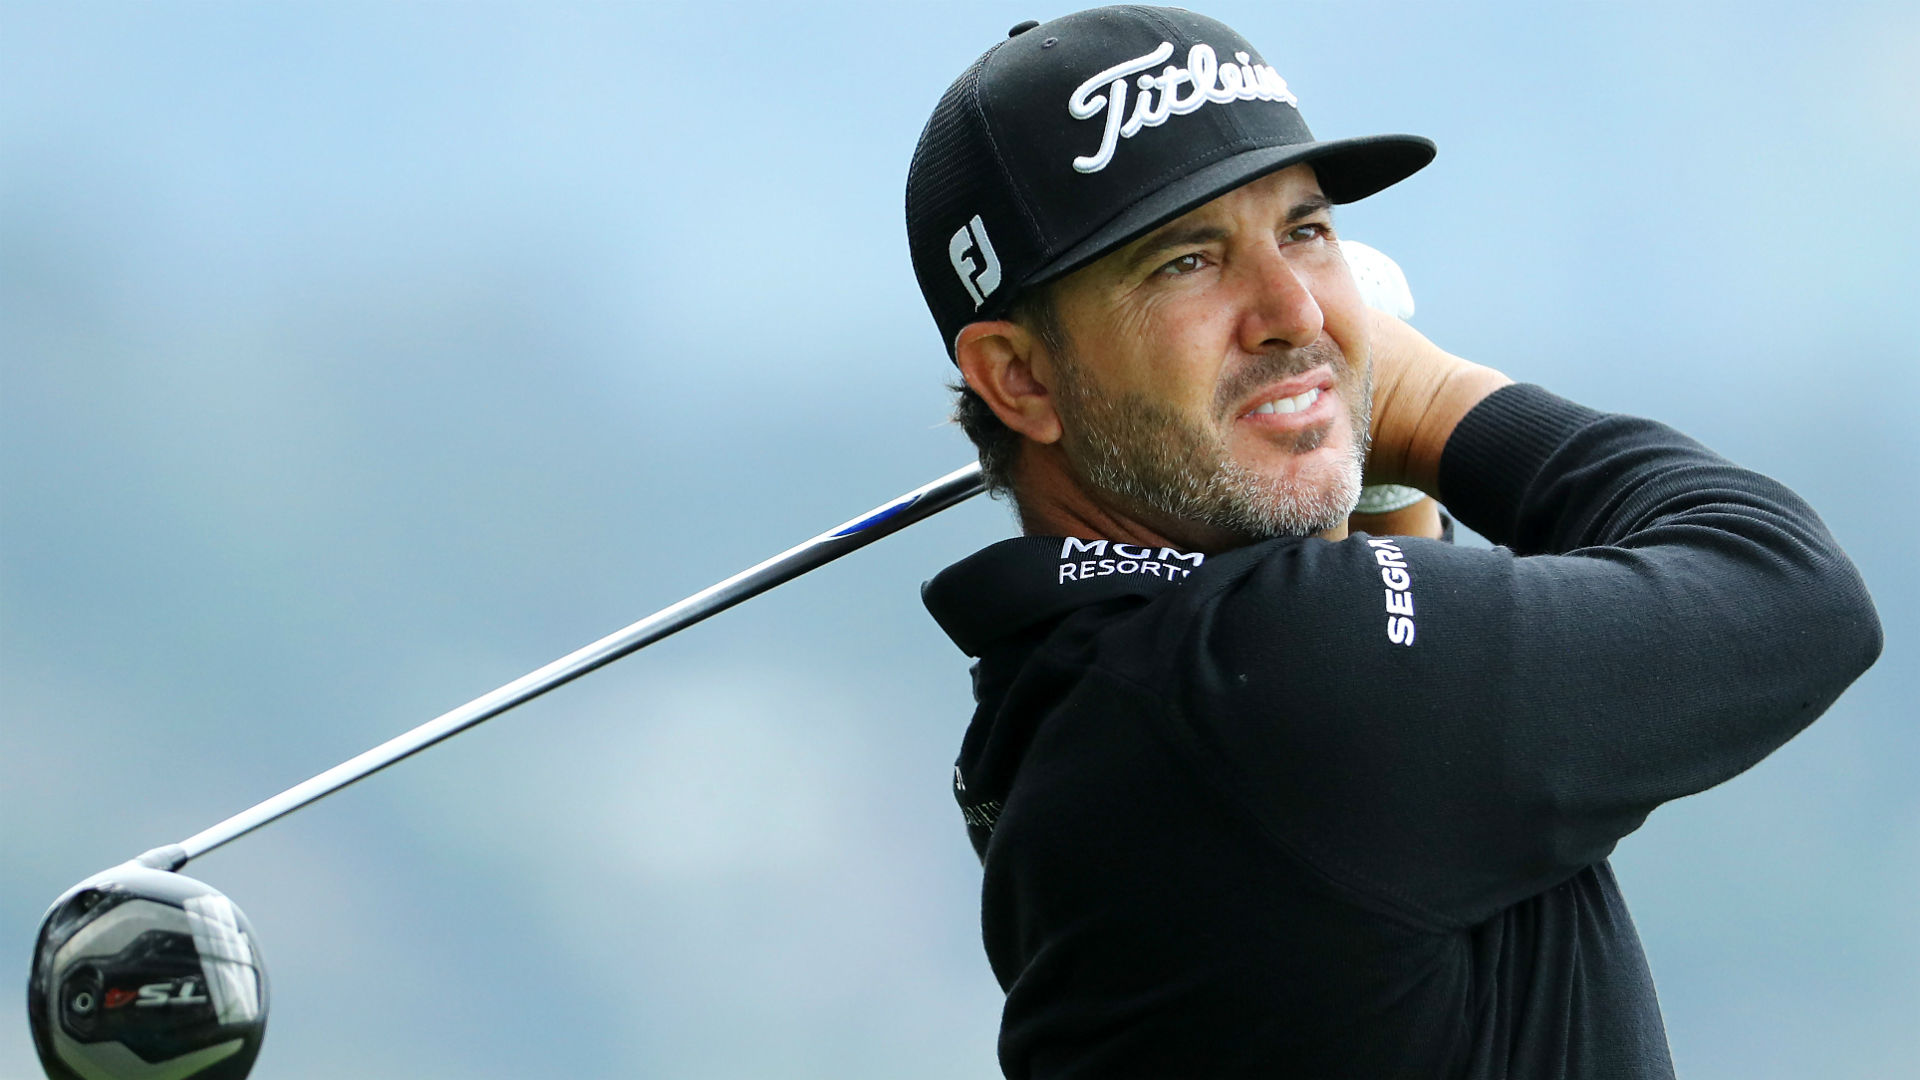 Piercy takes clubhouse U.S. Open lead